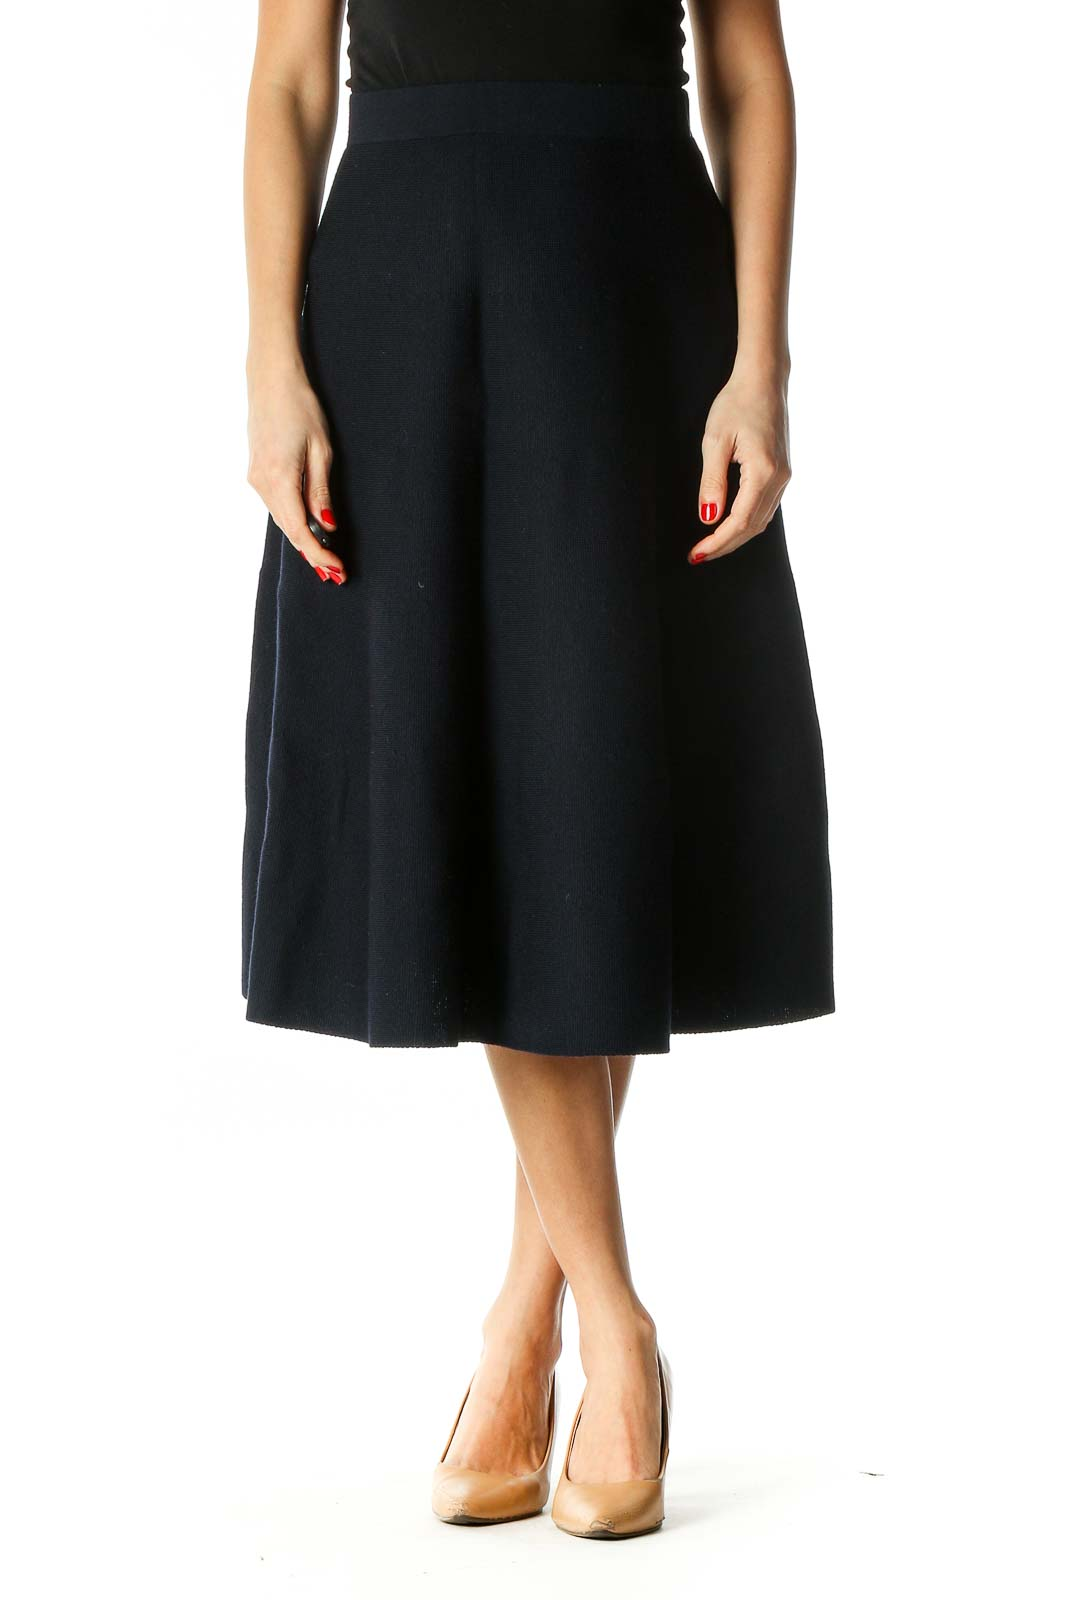 Blue Solid Retro Flared Skirt Front